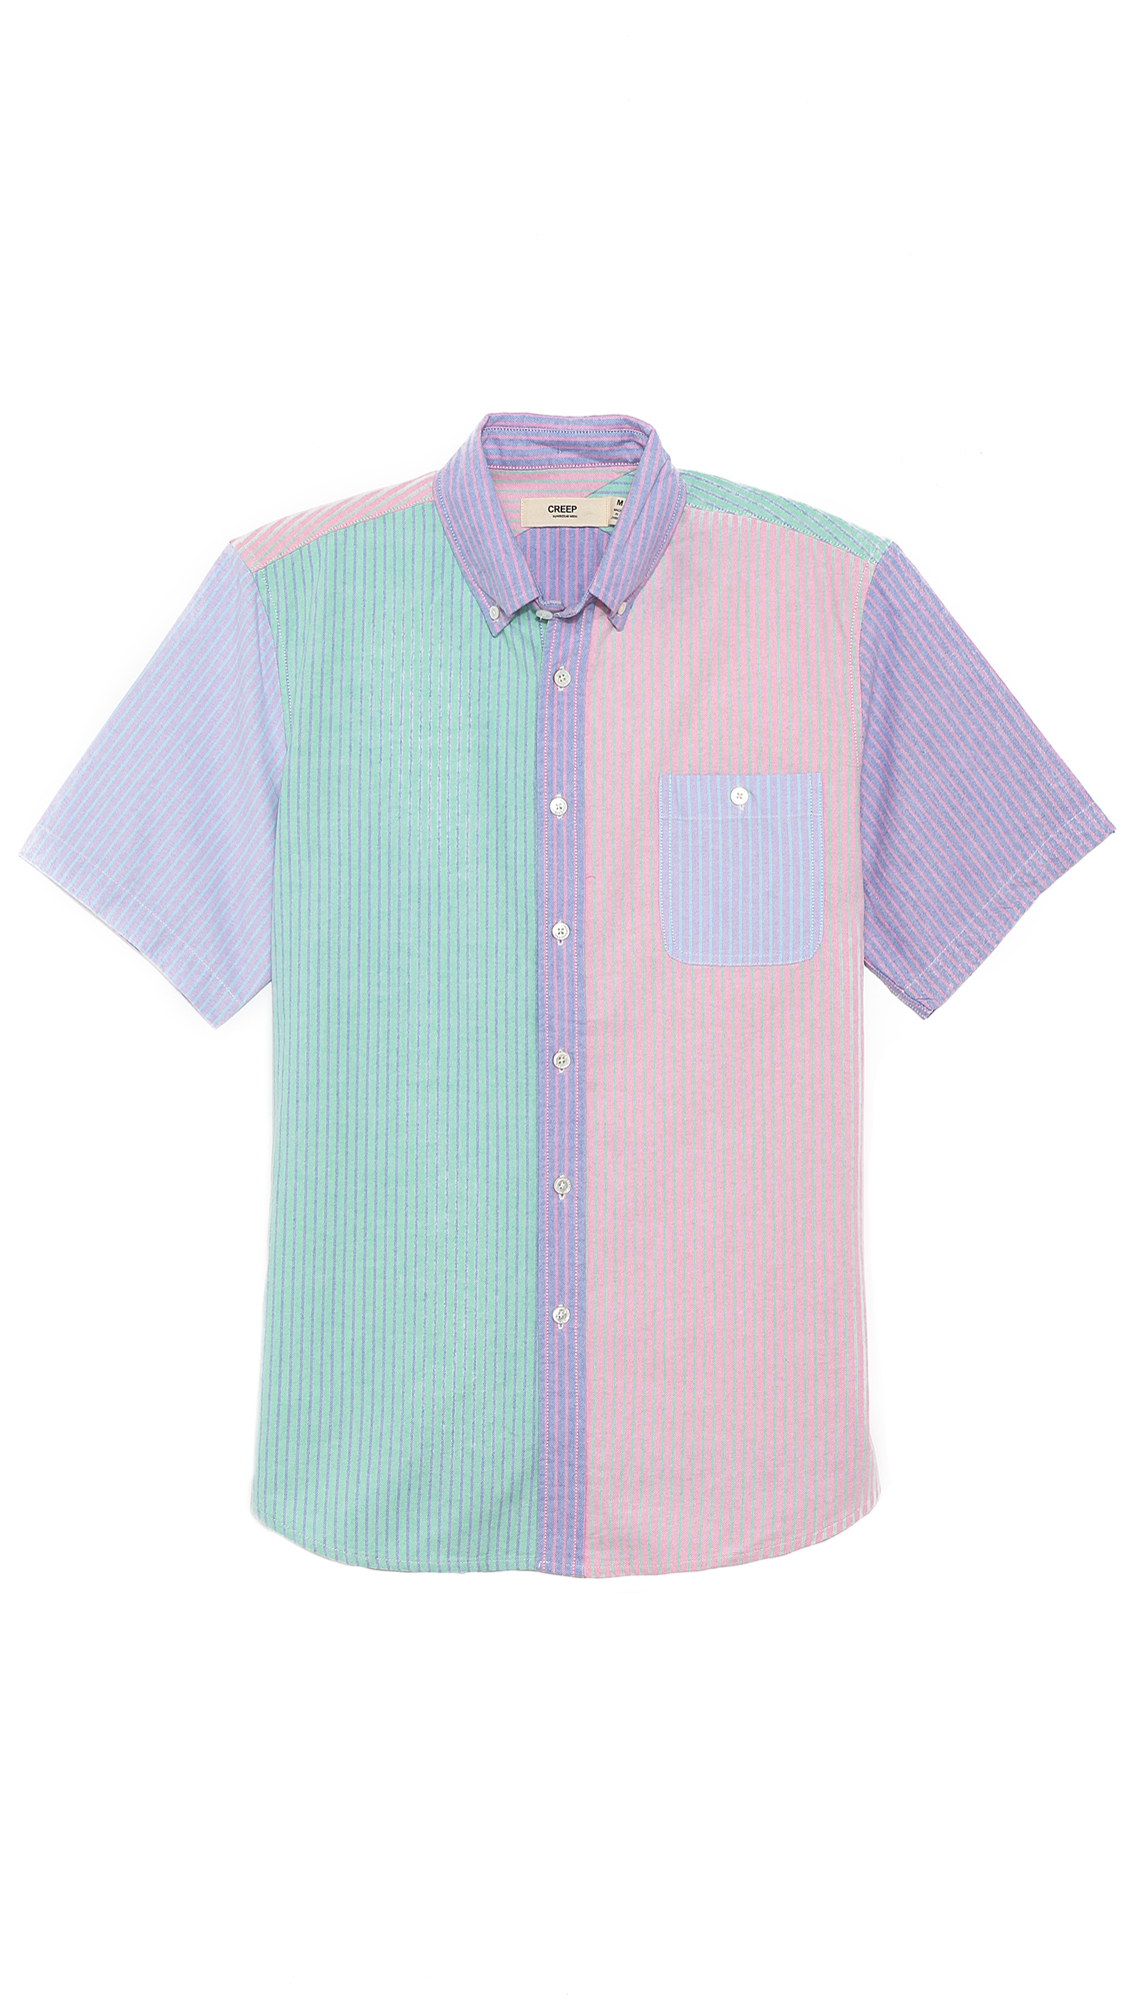 Multi colored button down shirt is shirt for Custom pattern button down shirts